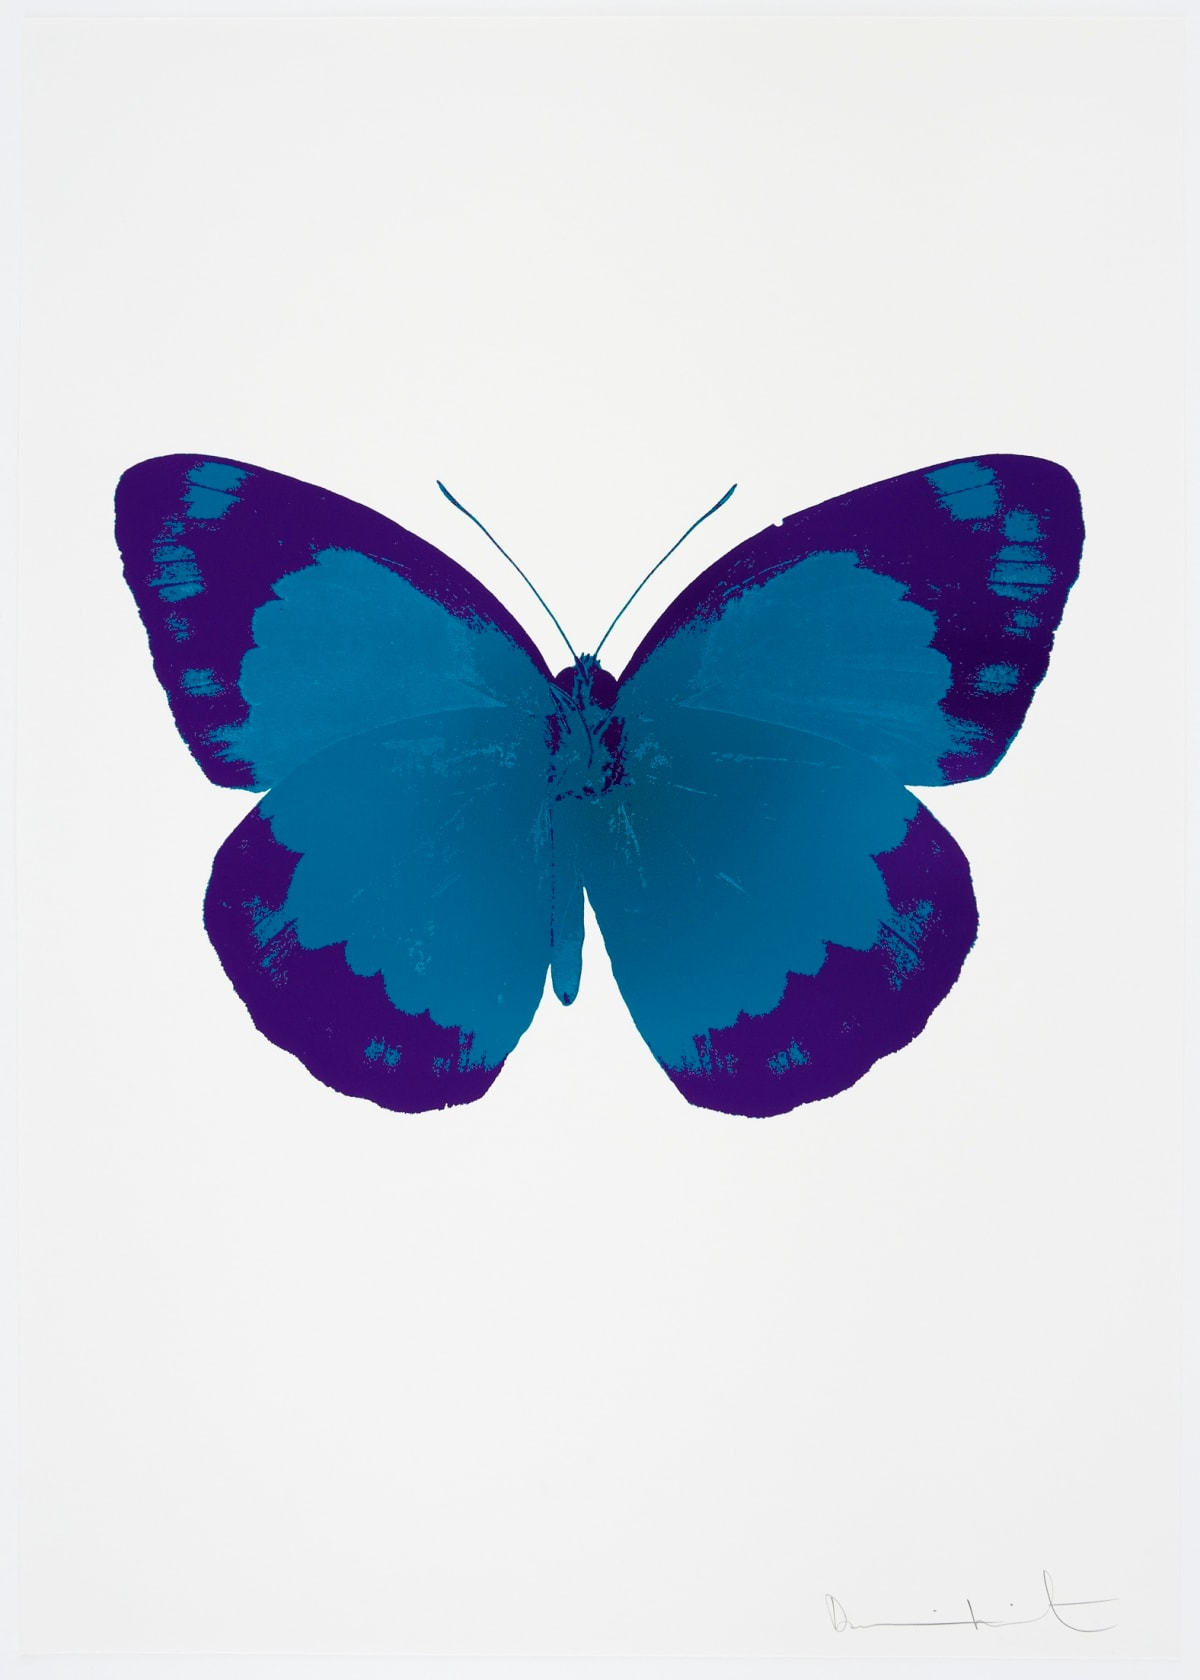 Damien Hirst The Souls II - Turquoise/Imperial Purple/Blind Impression, 2010 2 colour foil block on 300gsm Arches 88 archival paper. Signed and numbered. Published by Paul Stolper and Other Criteria 72 x 51cm OC7821 / 658-4 Edition of 15